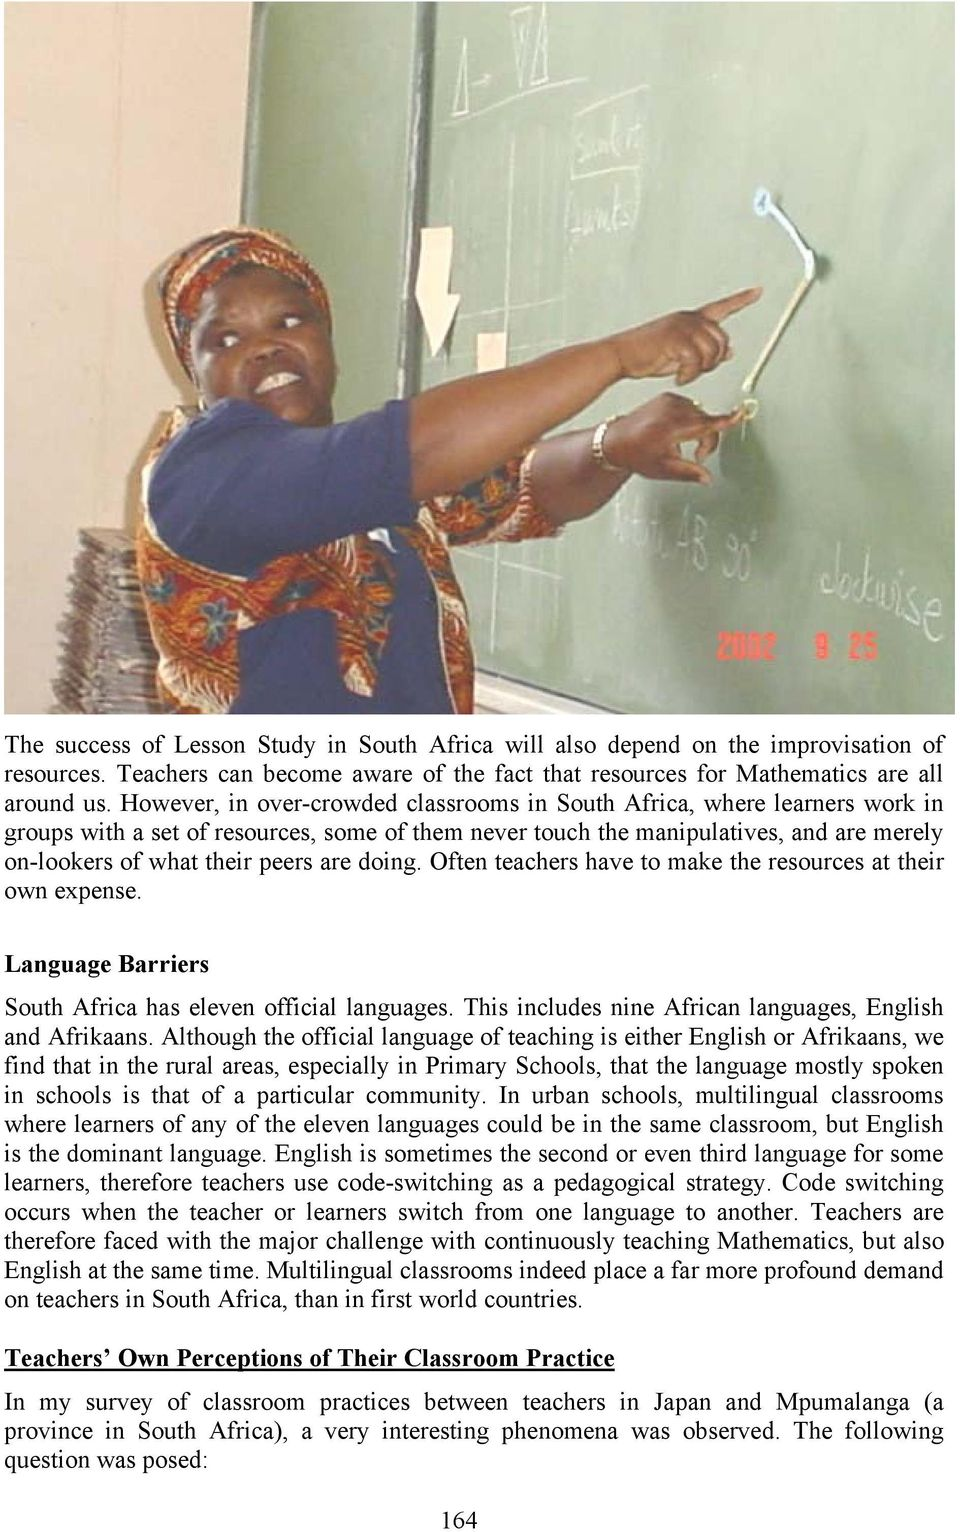 are doing. Often teachers have to make the resources at their own expense. Language Barriers South Africa has eleven official languages. This includes nine African languages, English and Afrikaans.